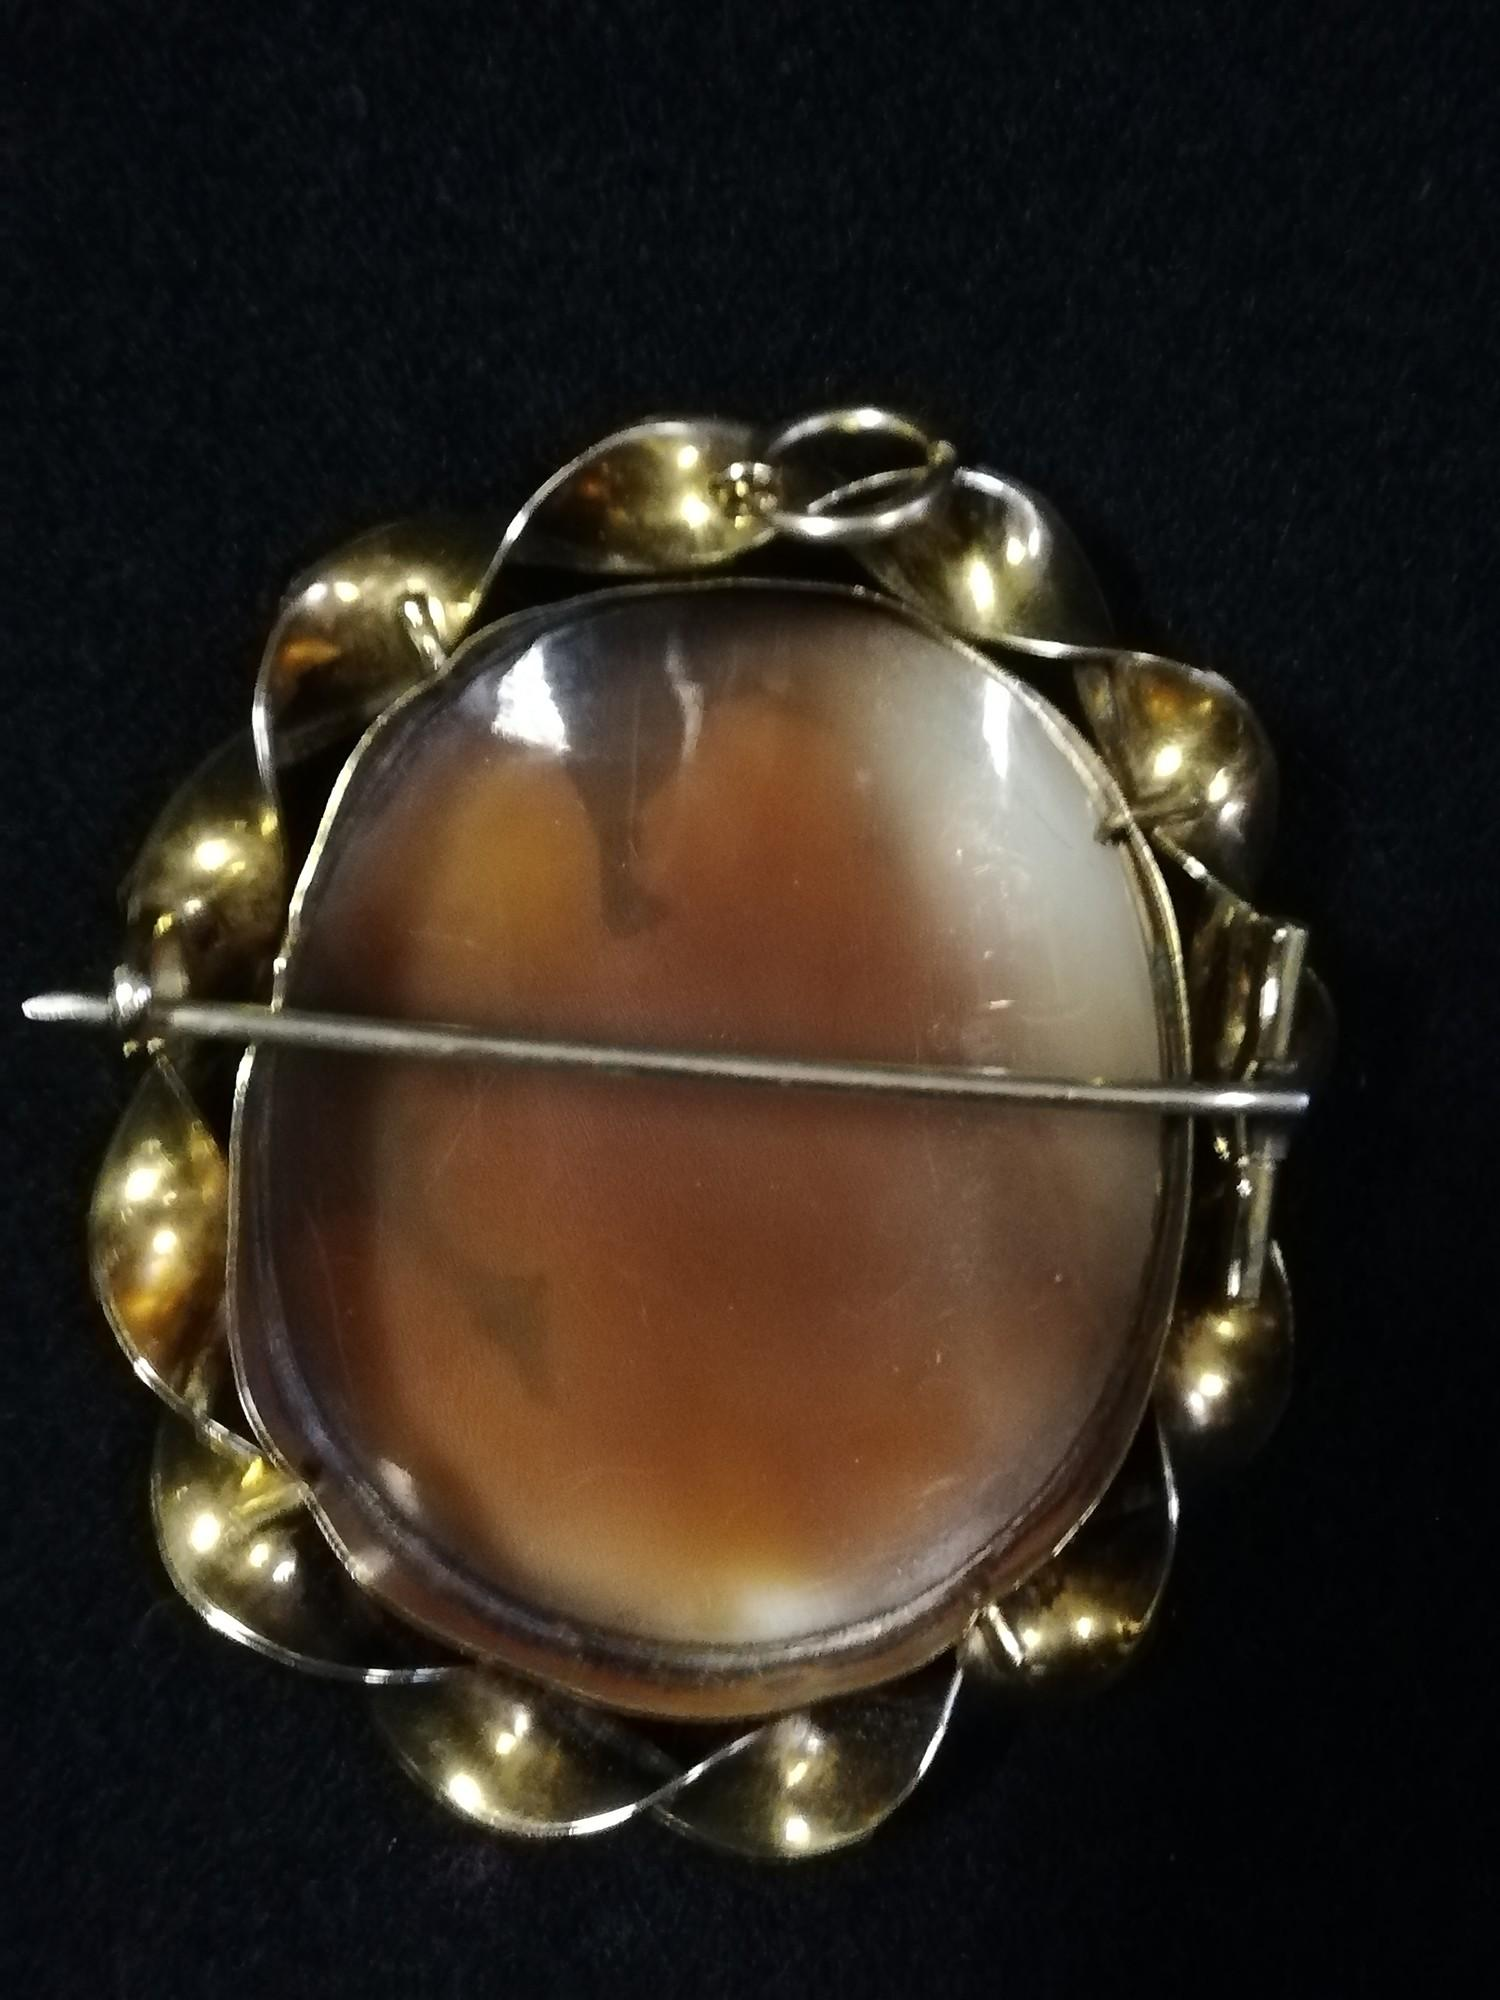 Unmarked gold mounted cameo brooch depicting an angel - Image 2 of 2